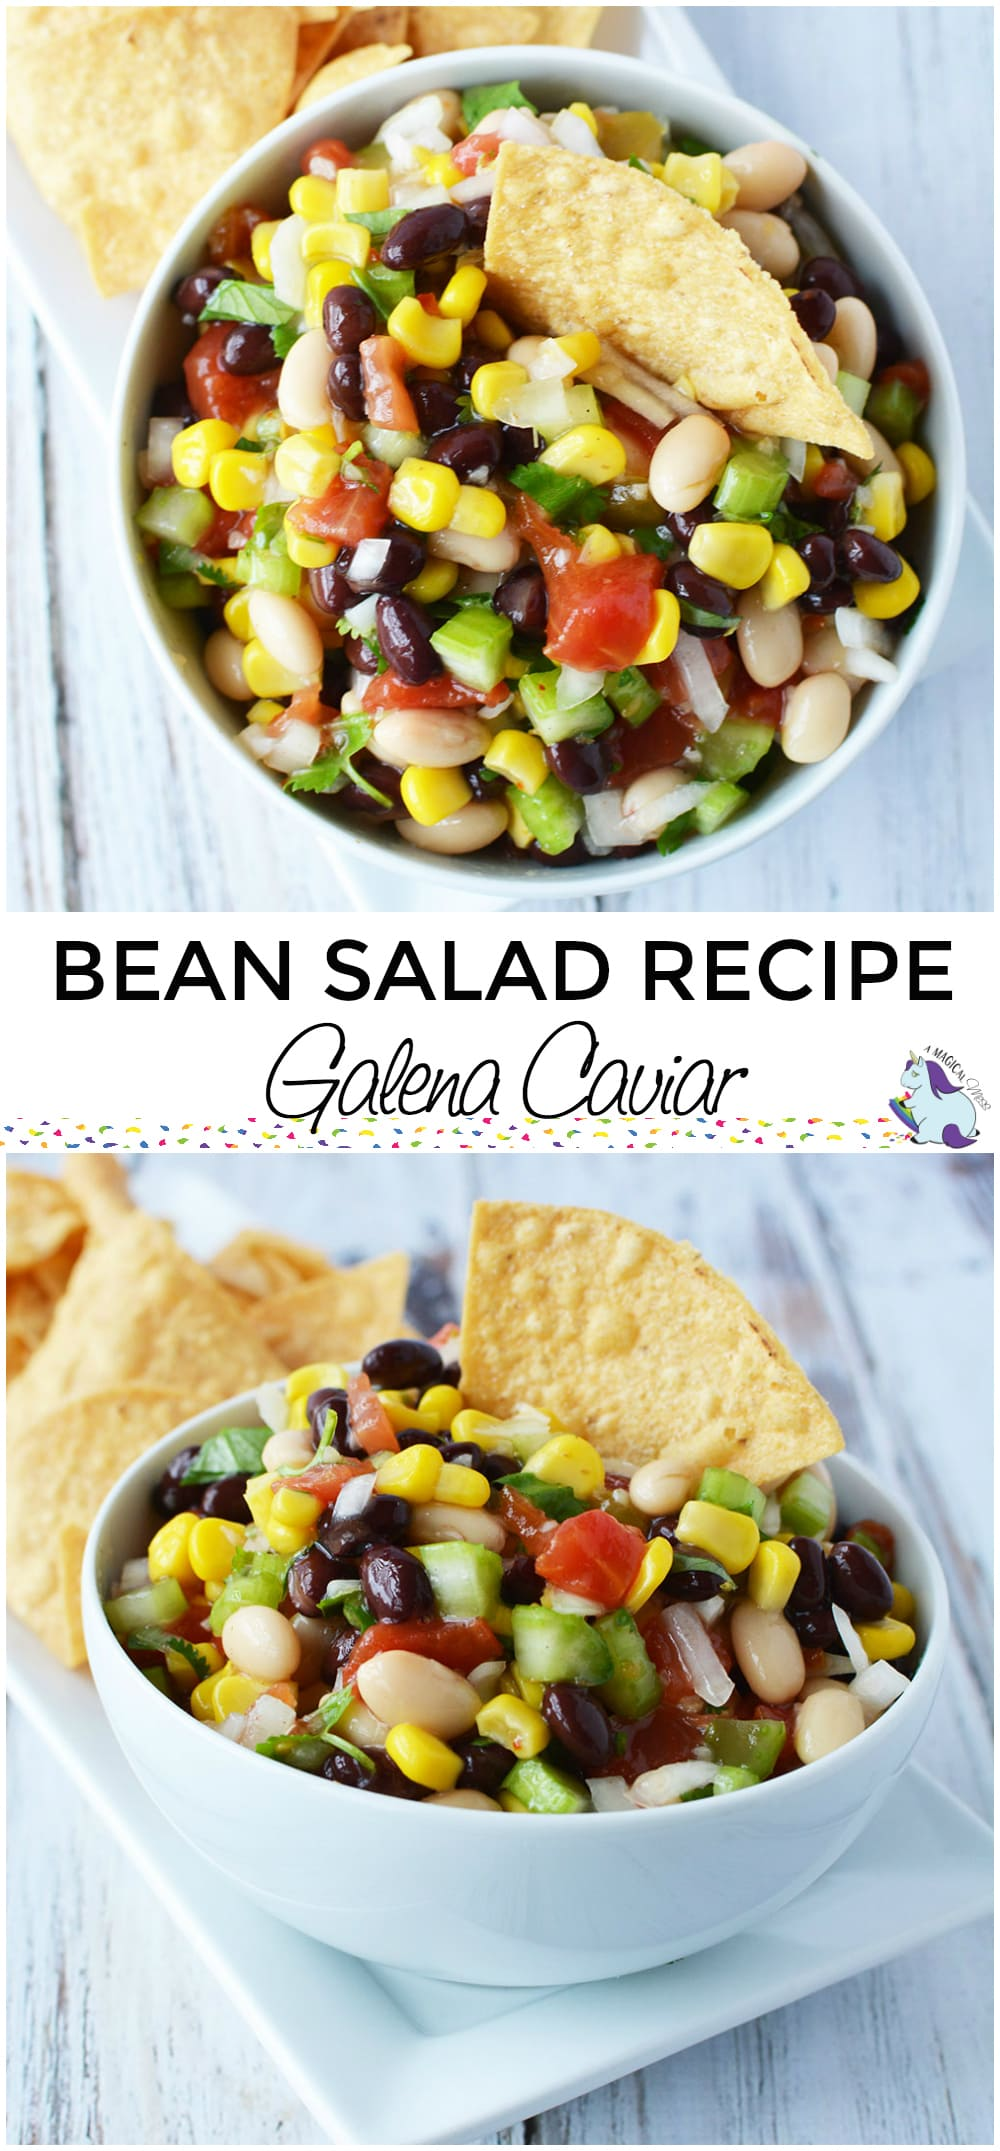 Bean Salad Recipe - My MIL's Famous Galena Caviar #sides #appetizers #bbq #dip #beans #veggies #sidedish